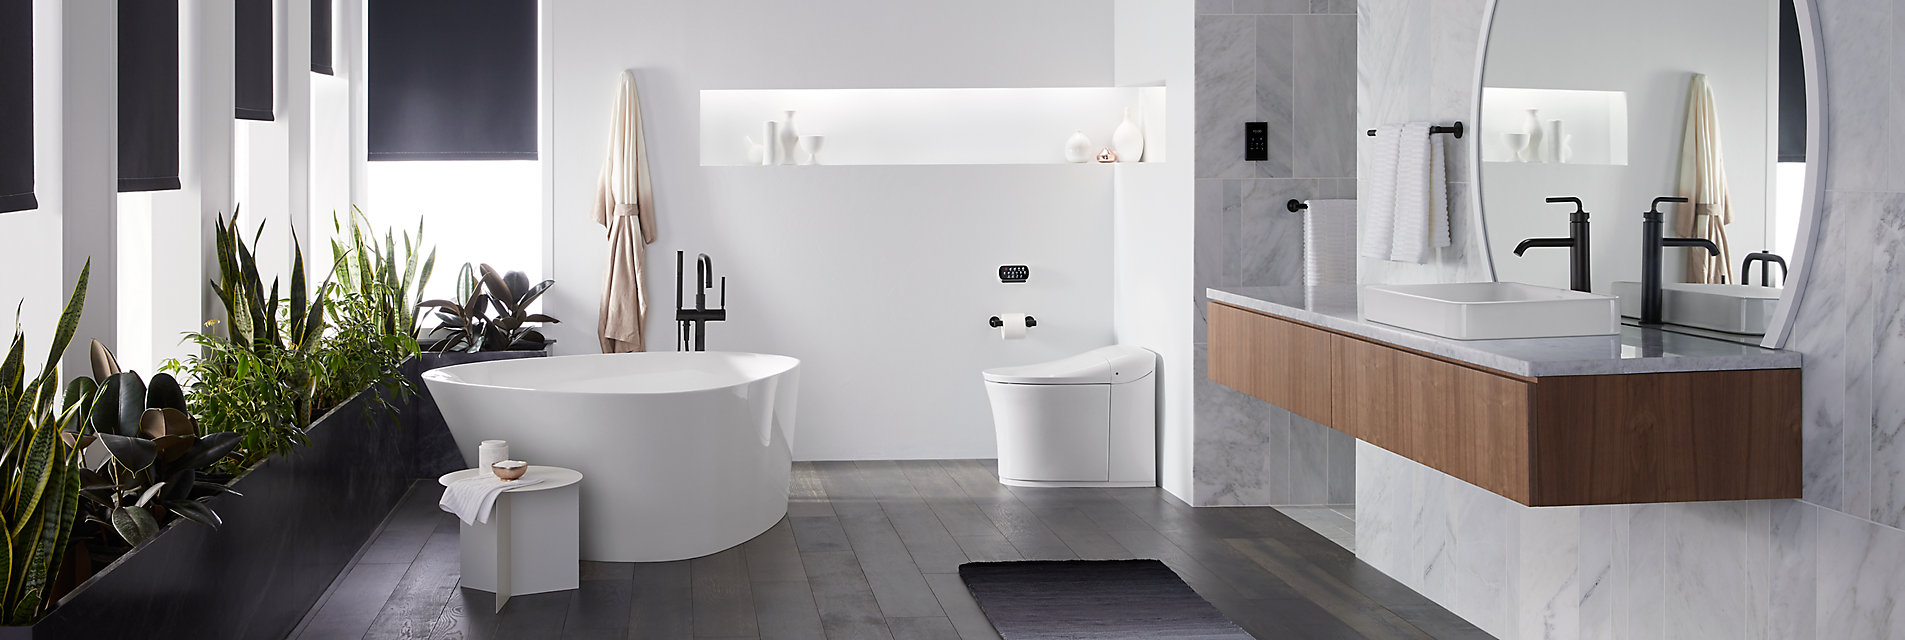 Kohler Toilets Showers Sinks